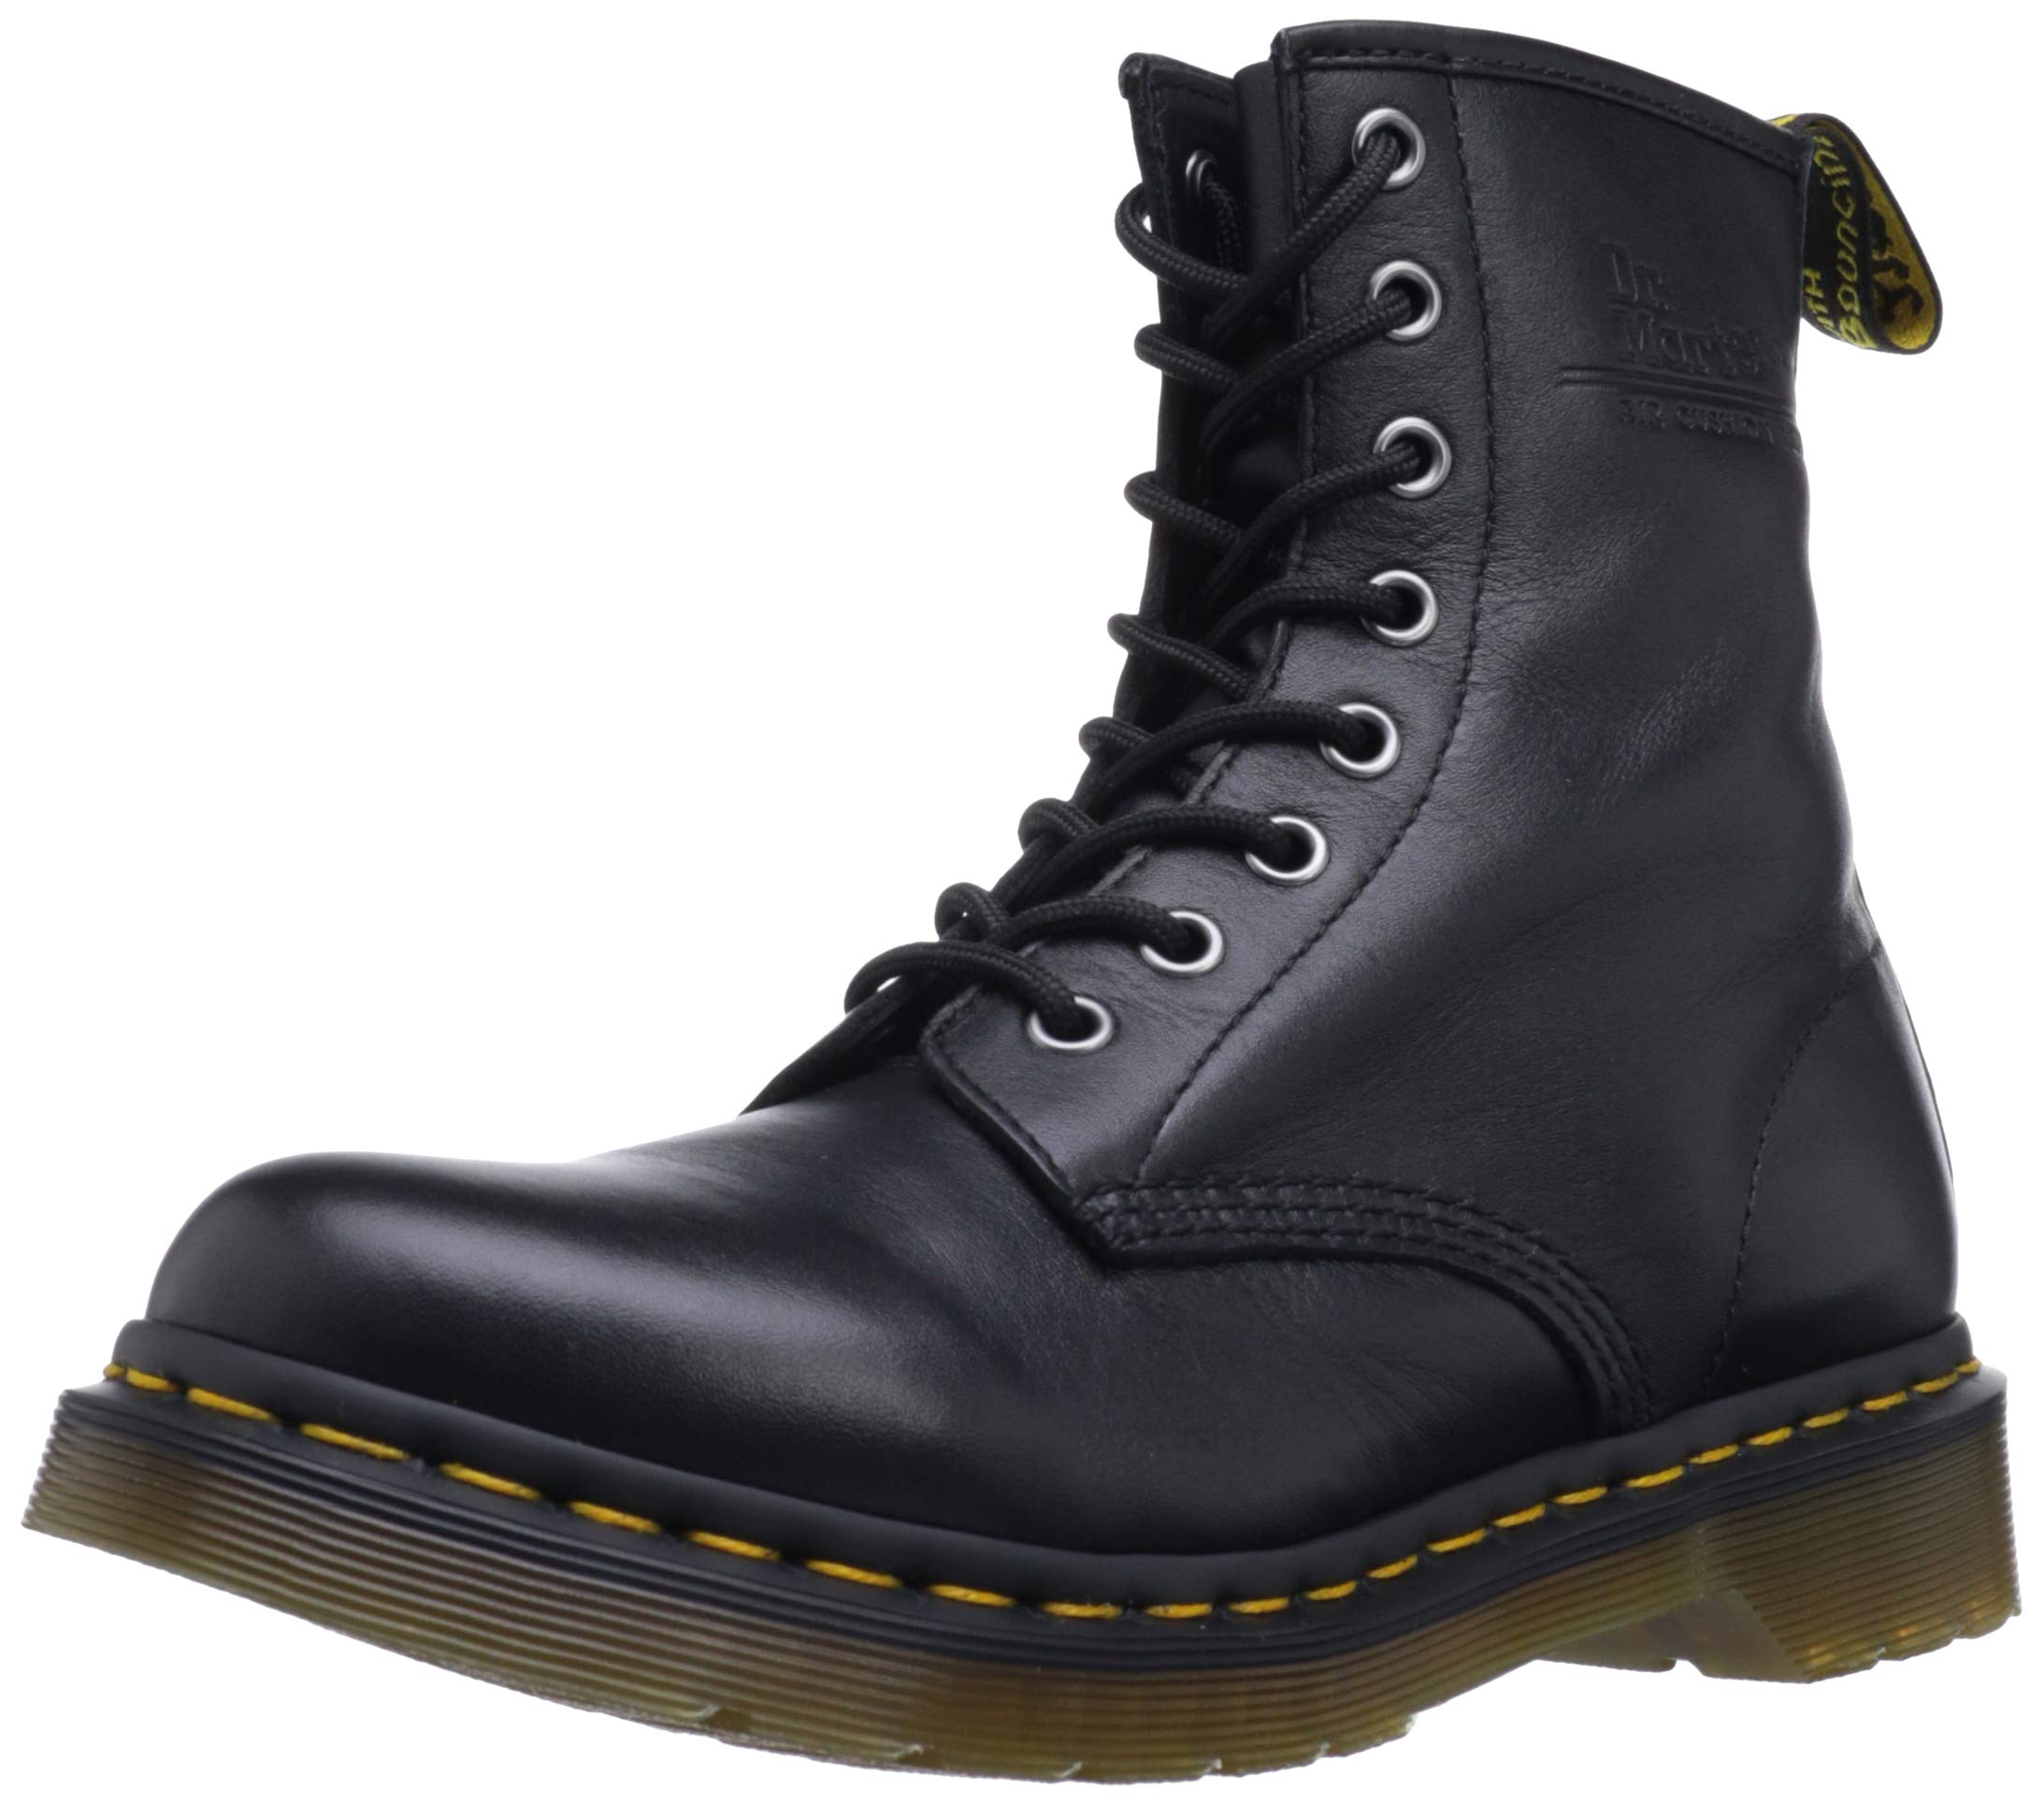 Dr. Martens Womens 1460W Originals Eight-Eye Lace-Up Boot, Black, 8 M US/6 UK by Dr. Martens